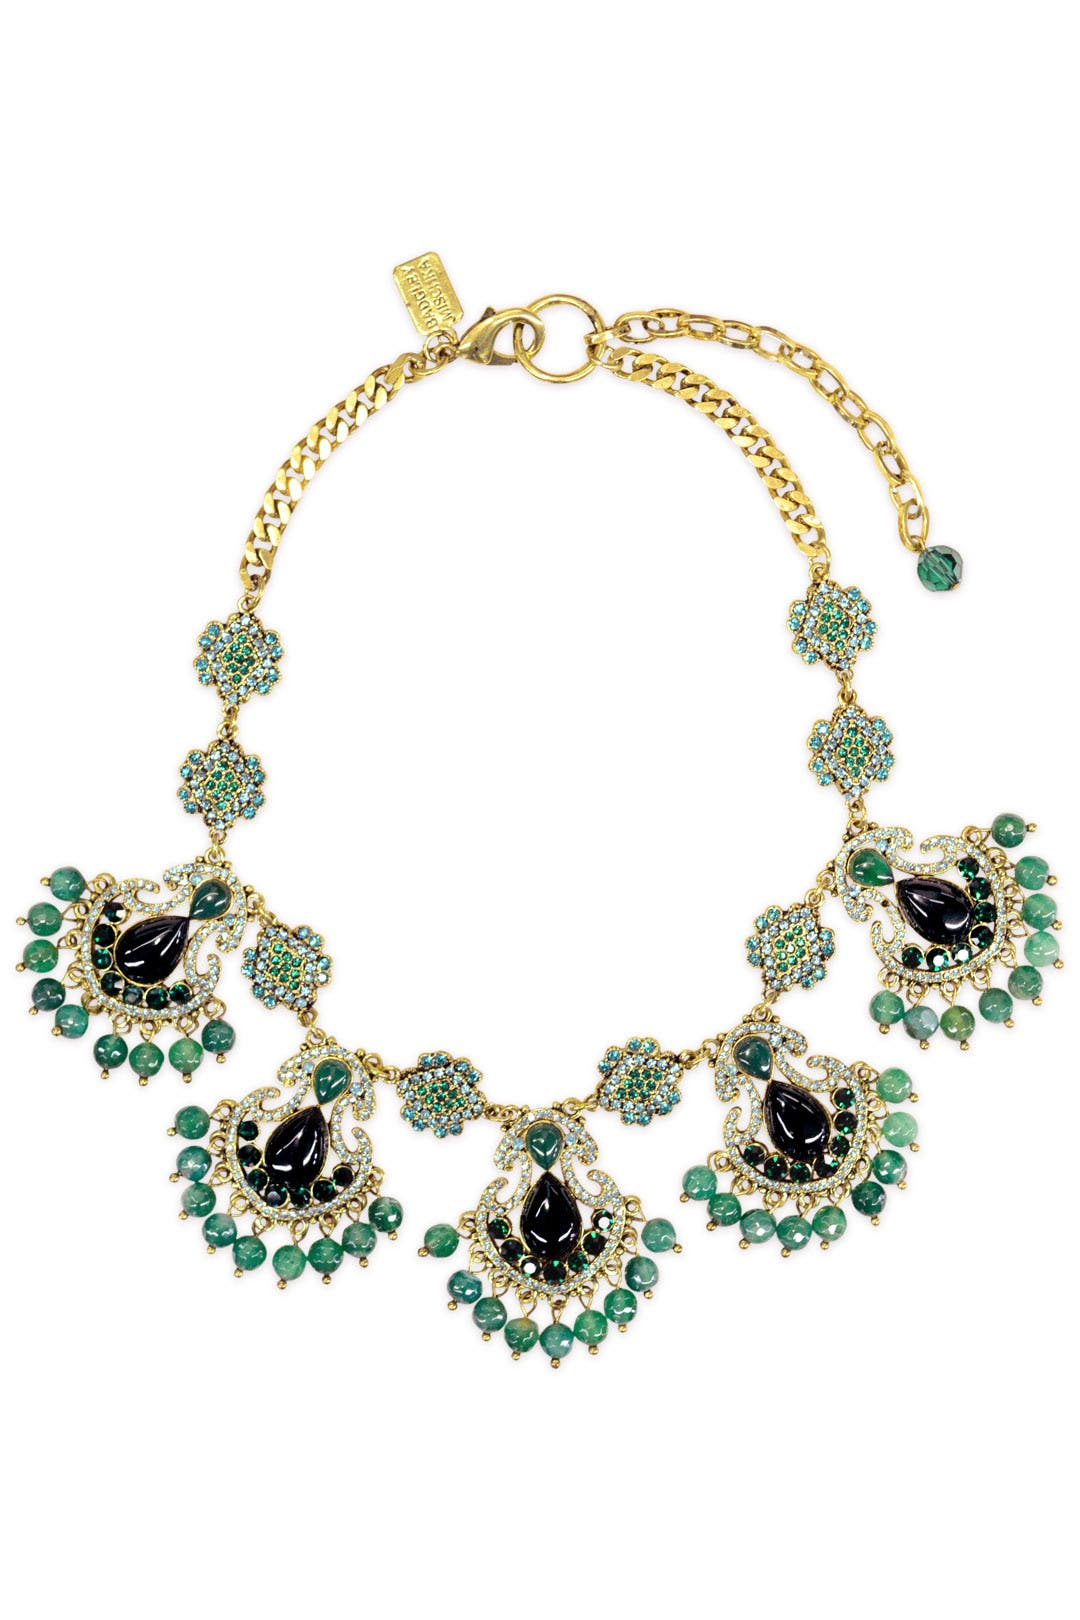 Entrancing Emerald Necklace by Badgley Mischka Jewelry